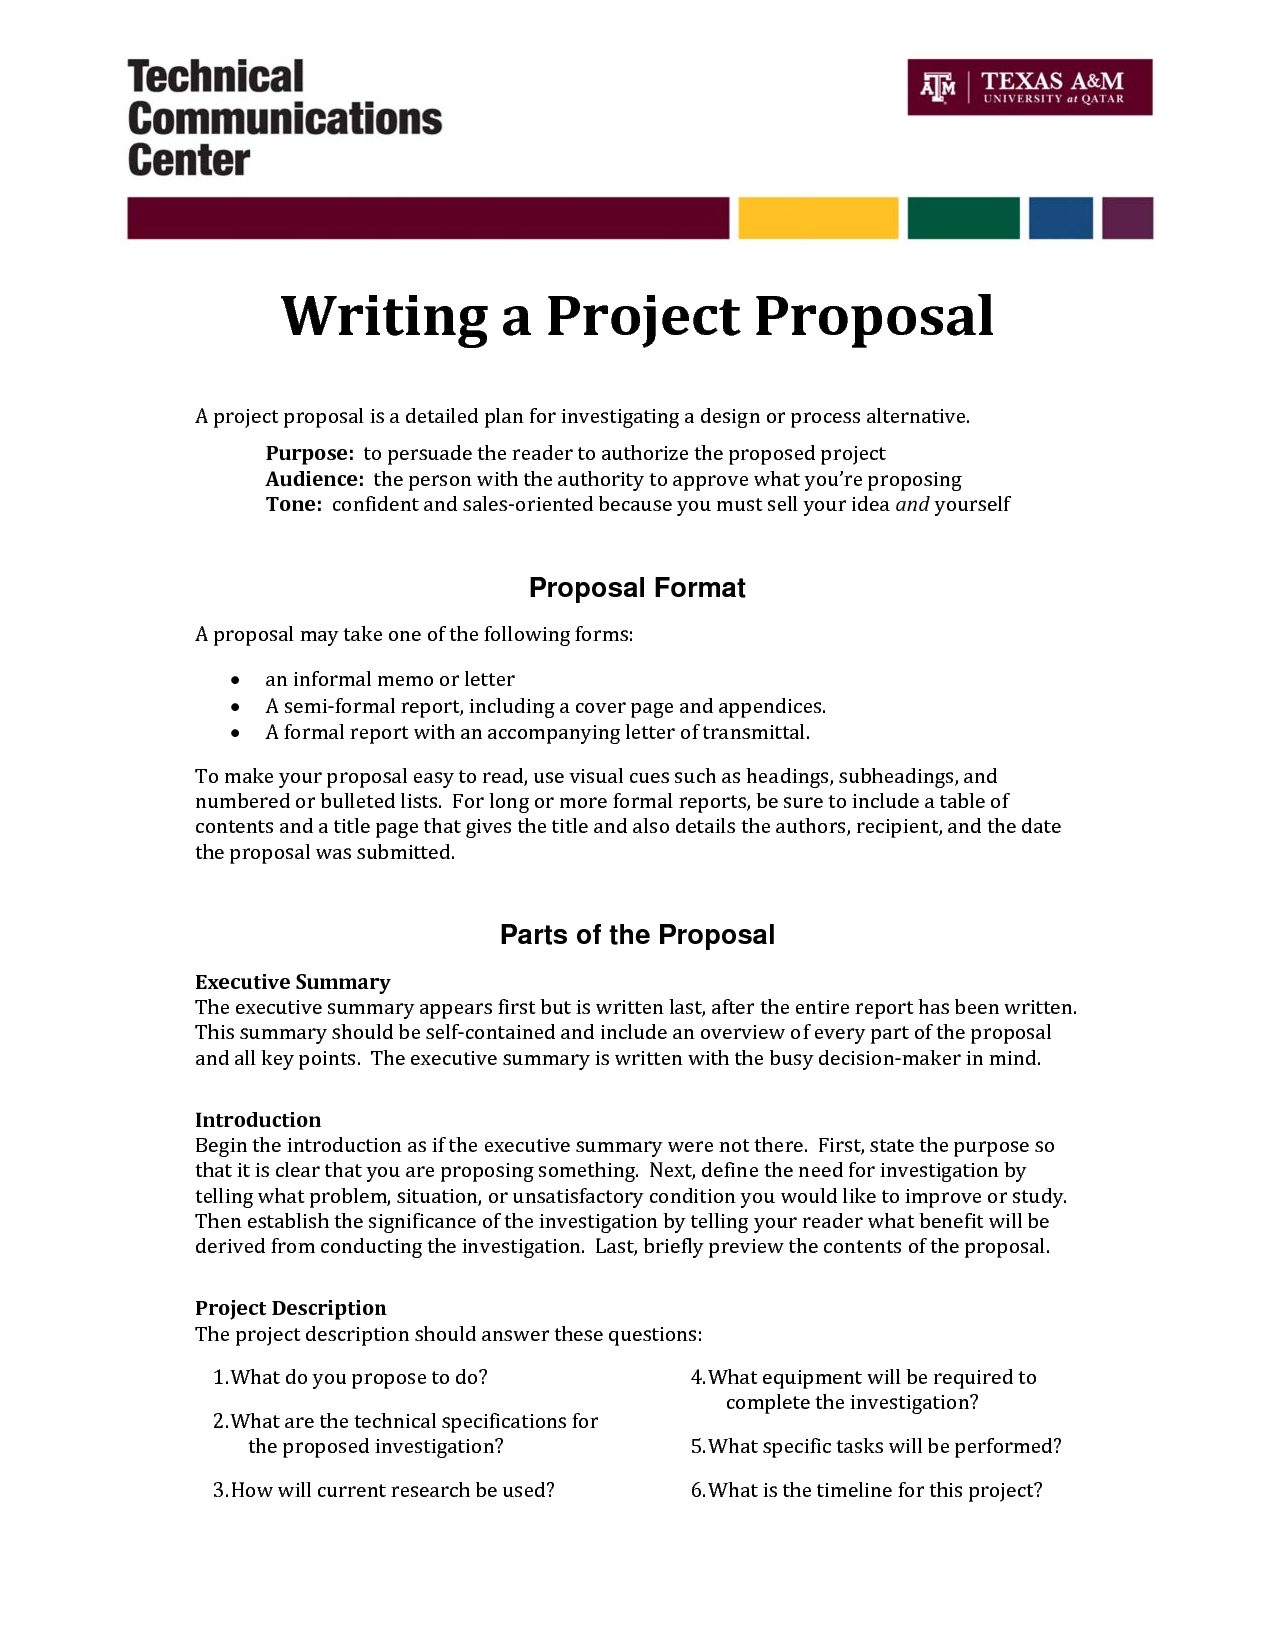 Informal Proposal Letter Example | Writing A Project Proposal A Project  Proposal Is A Detailed  Example Proposal Letter